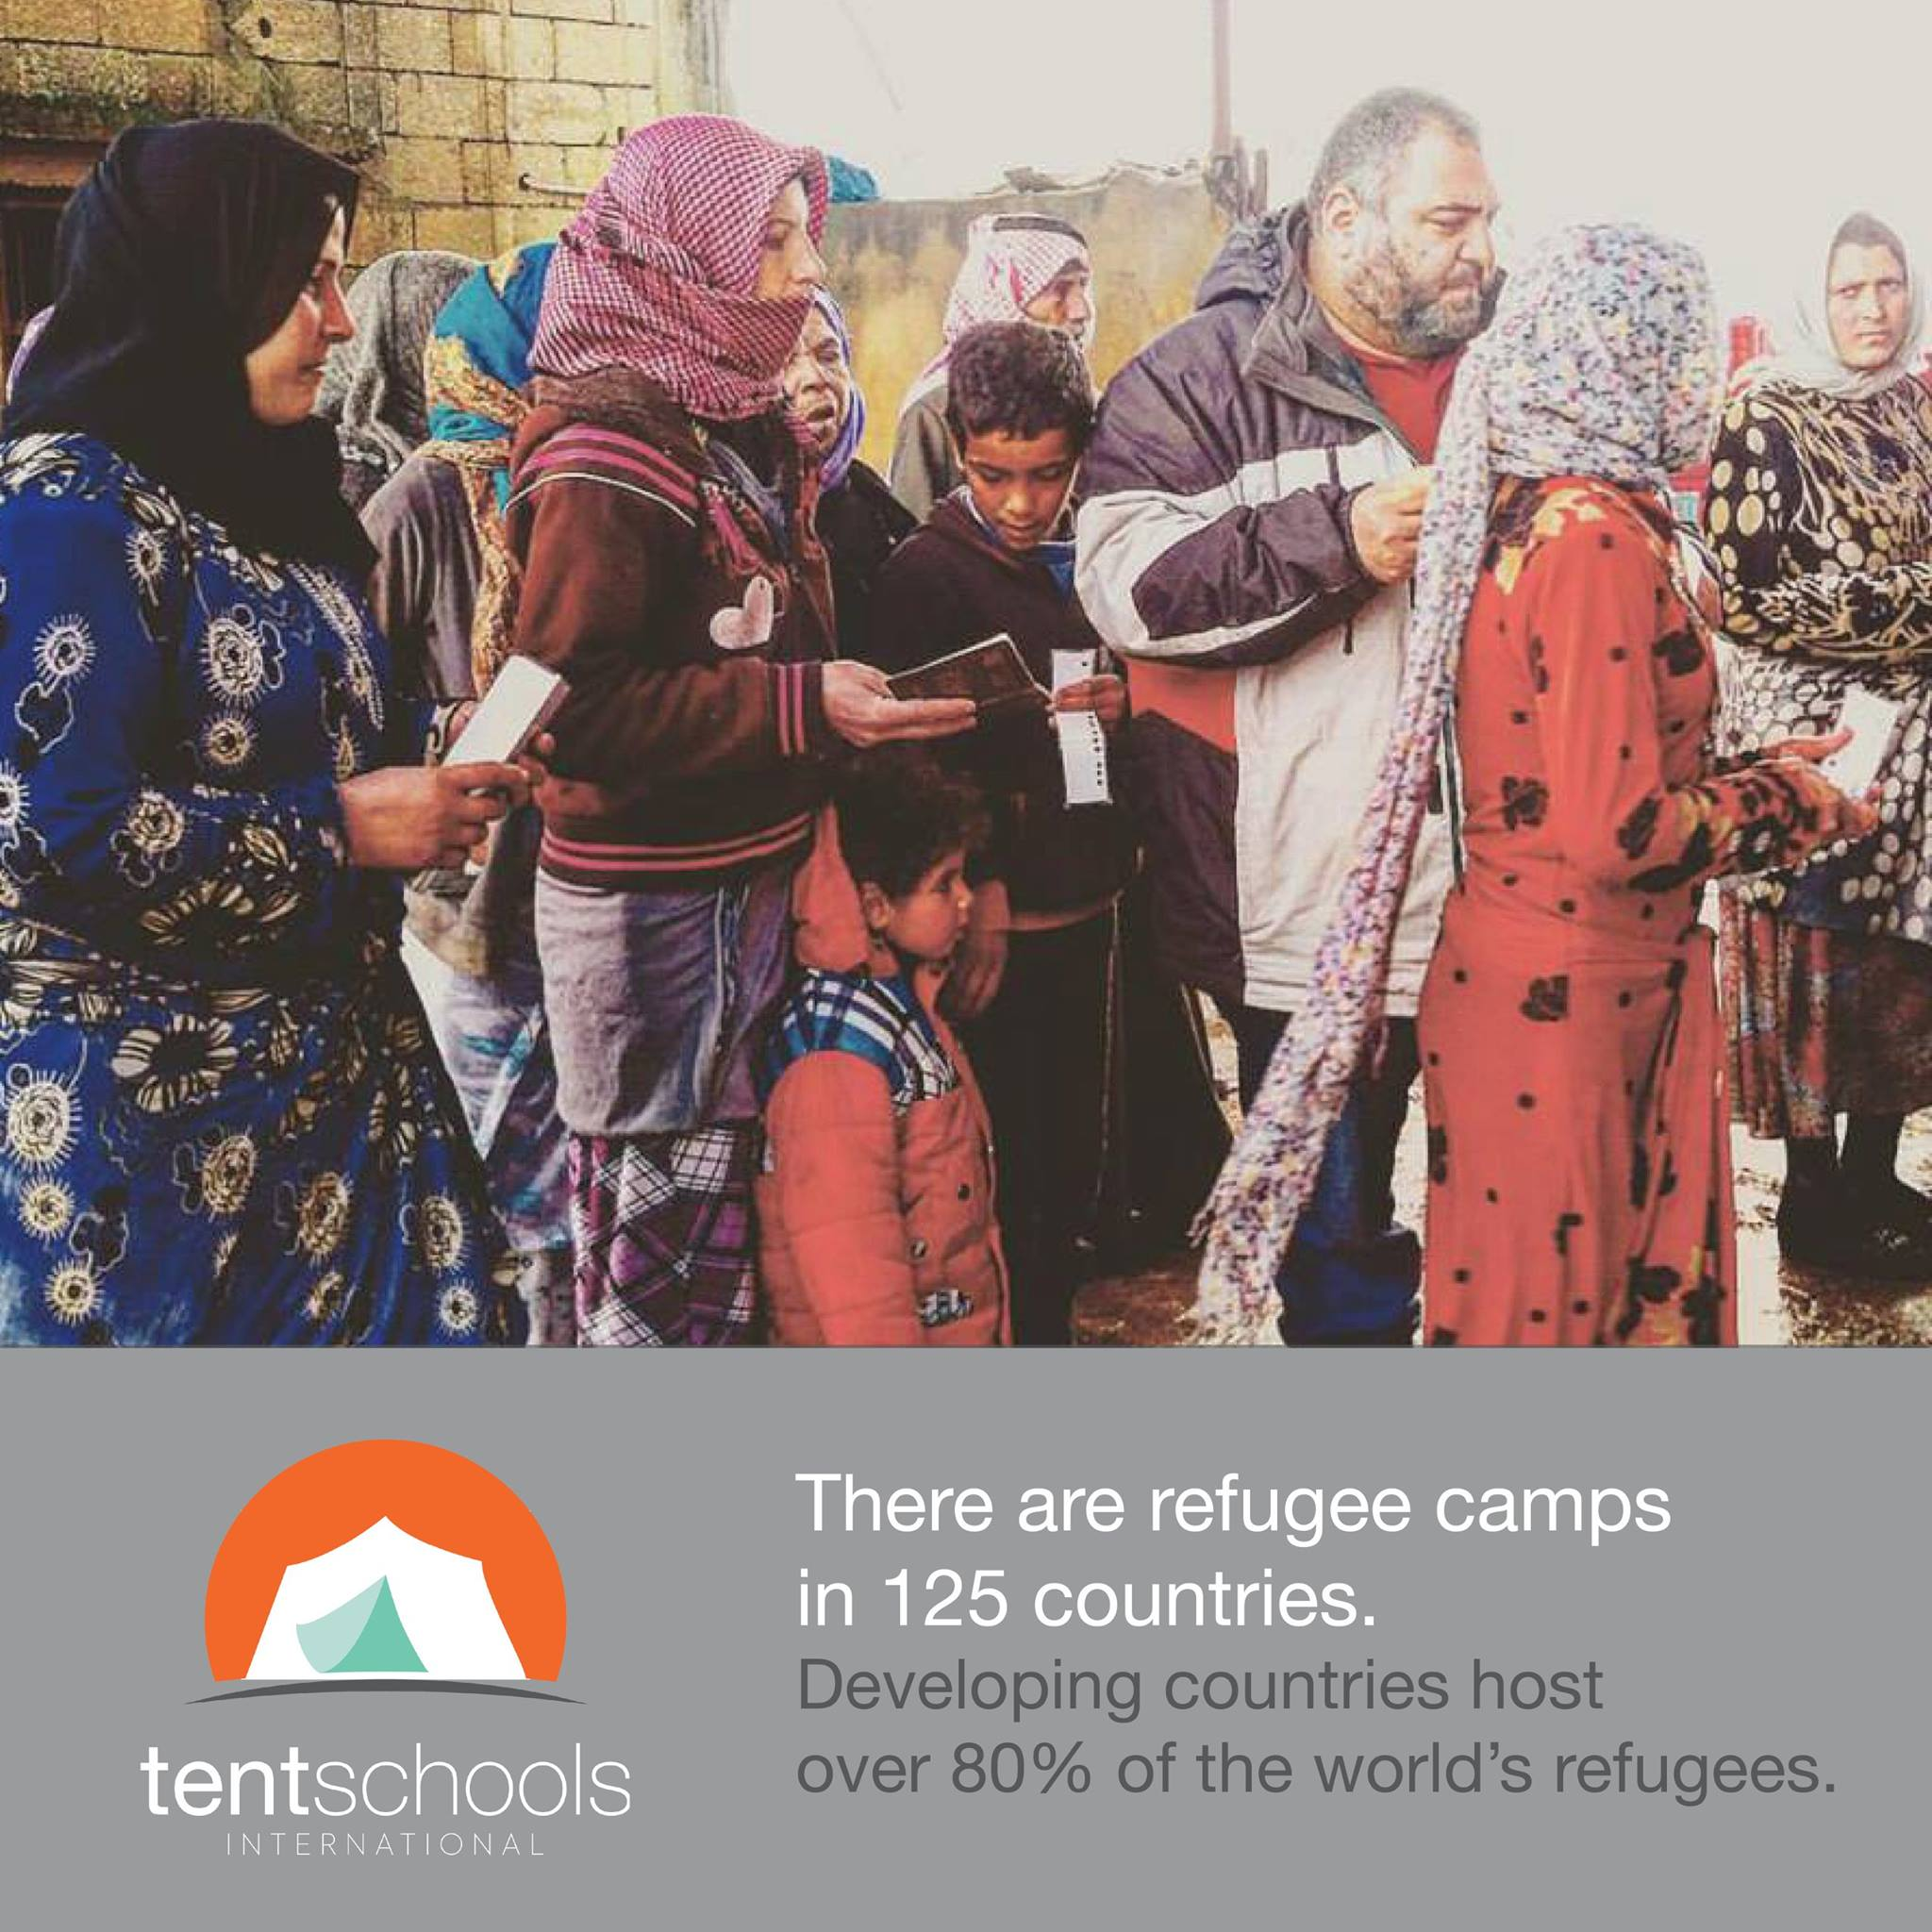 PTSD: A refugee child's learning block